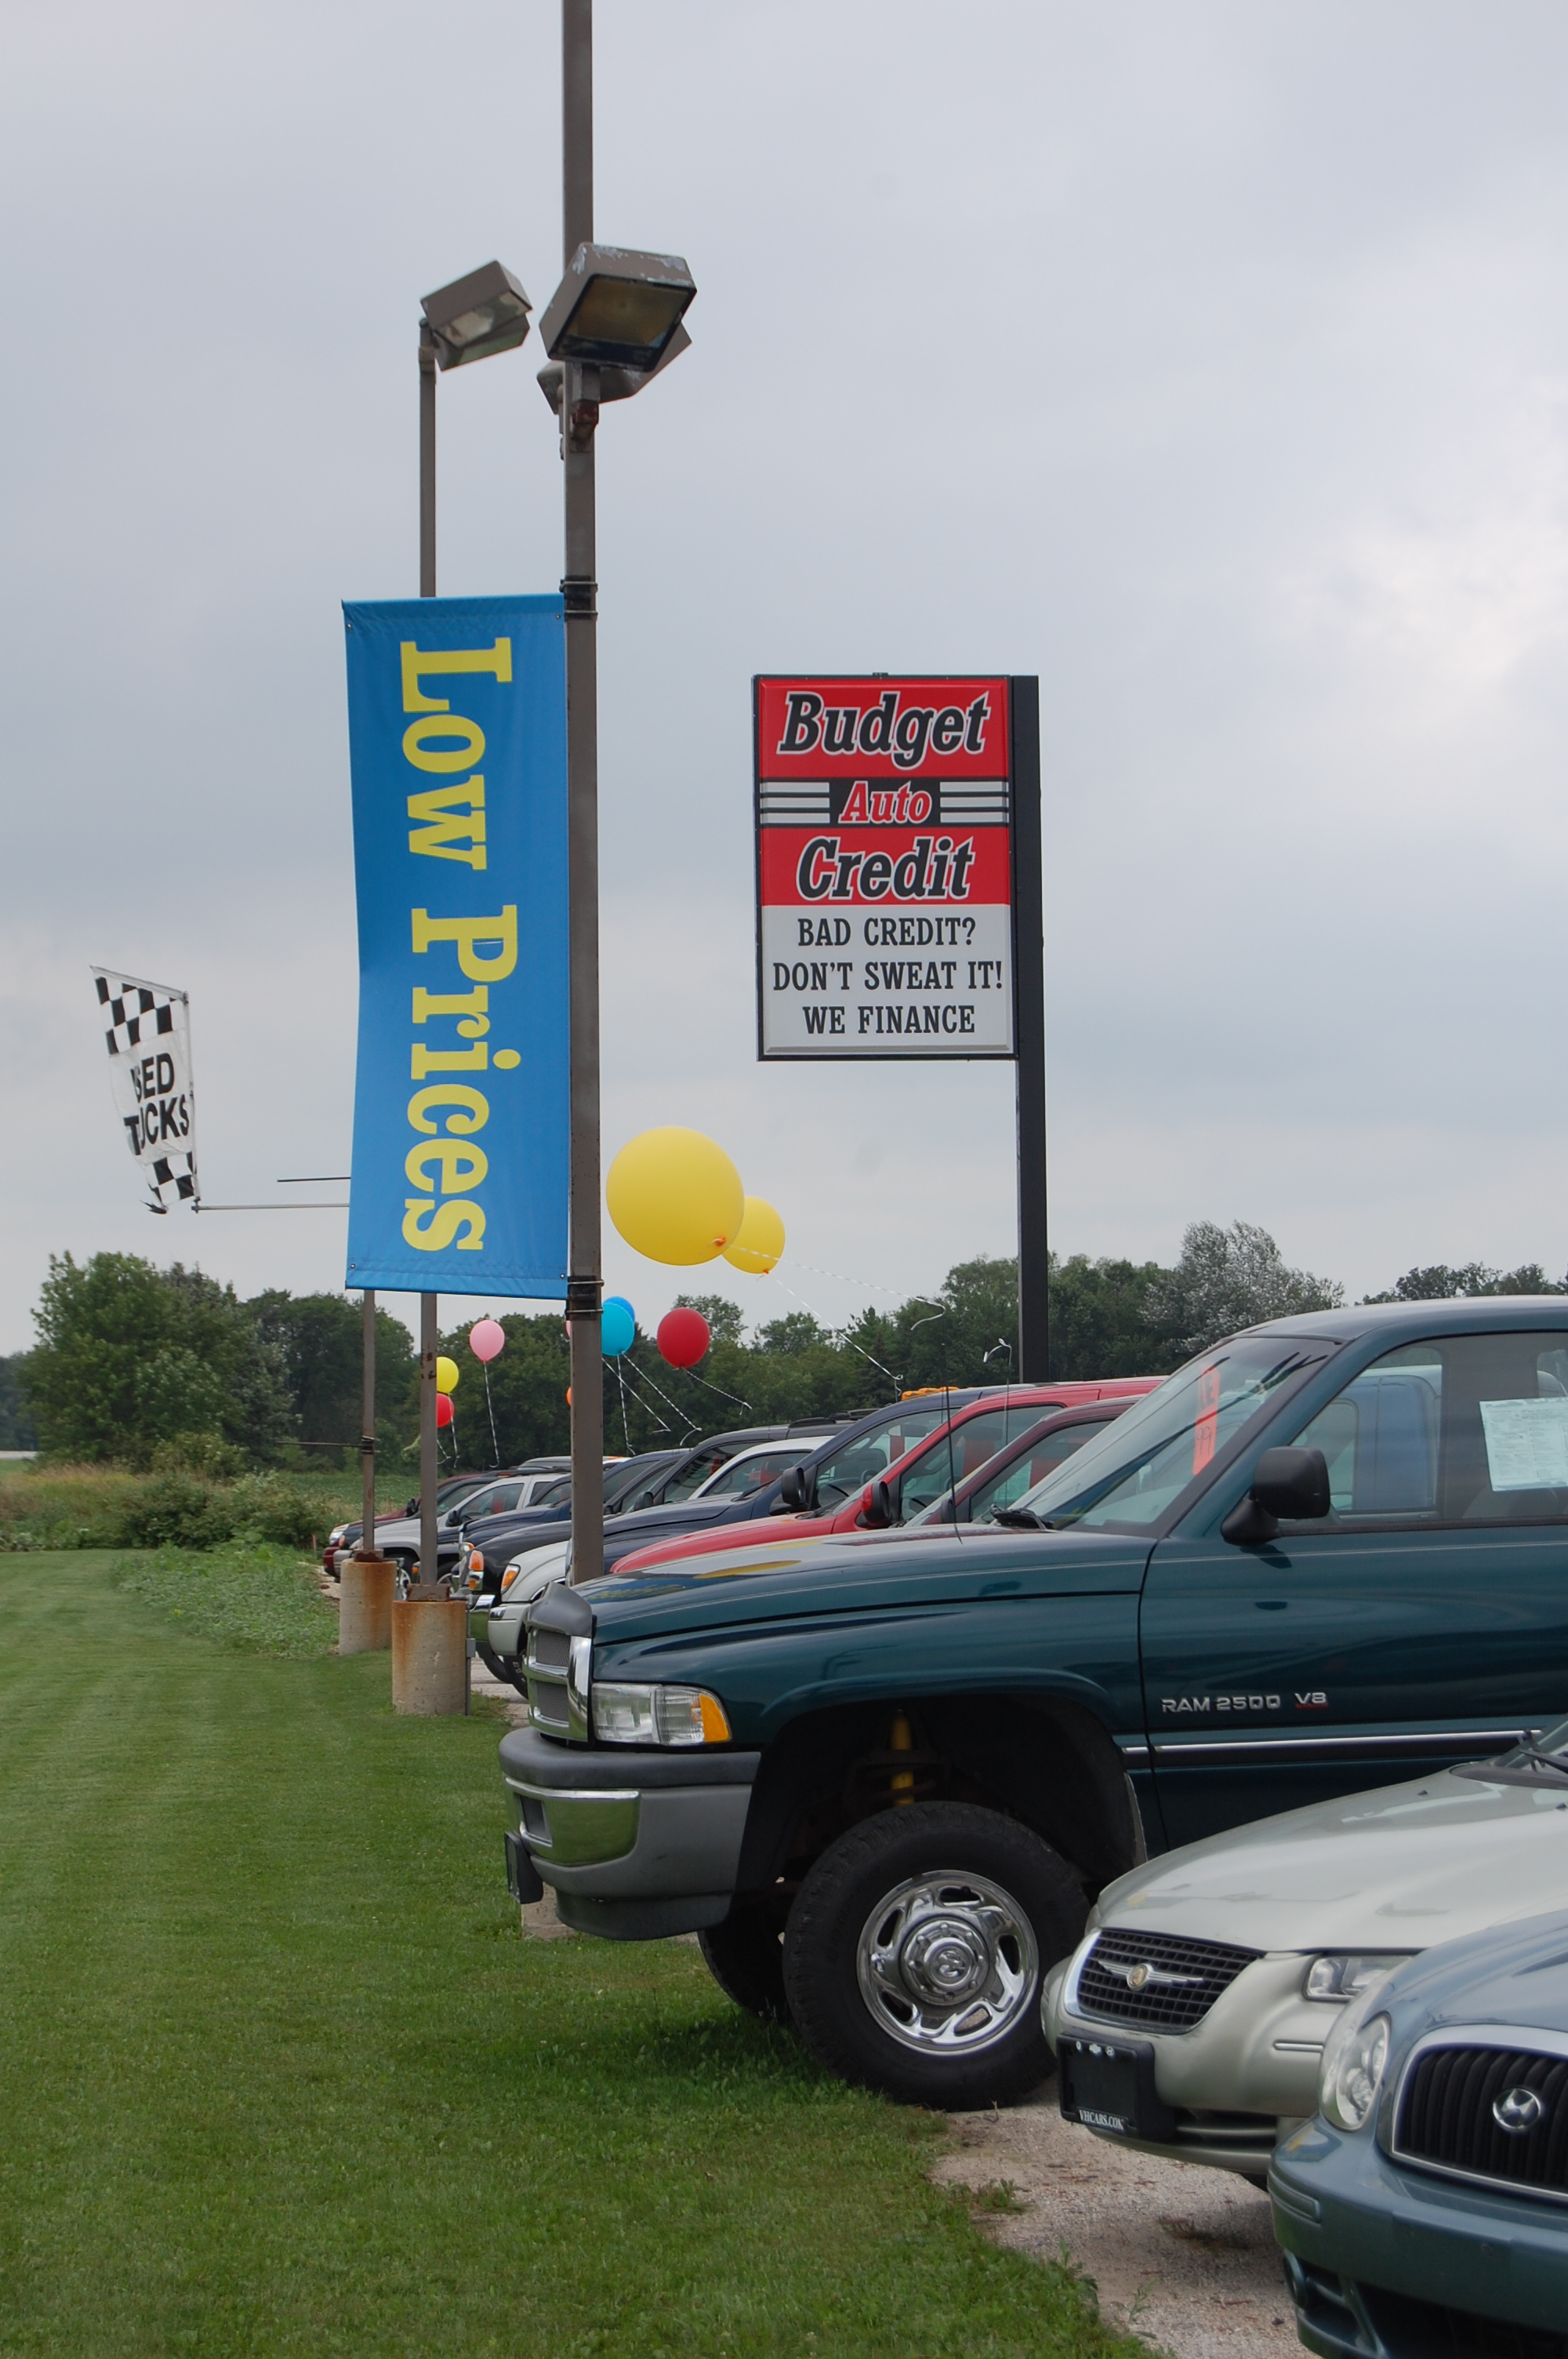 Sheboygan county budget auto n5908 willow rd plymouth wi for Budget motors of wisconsin